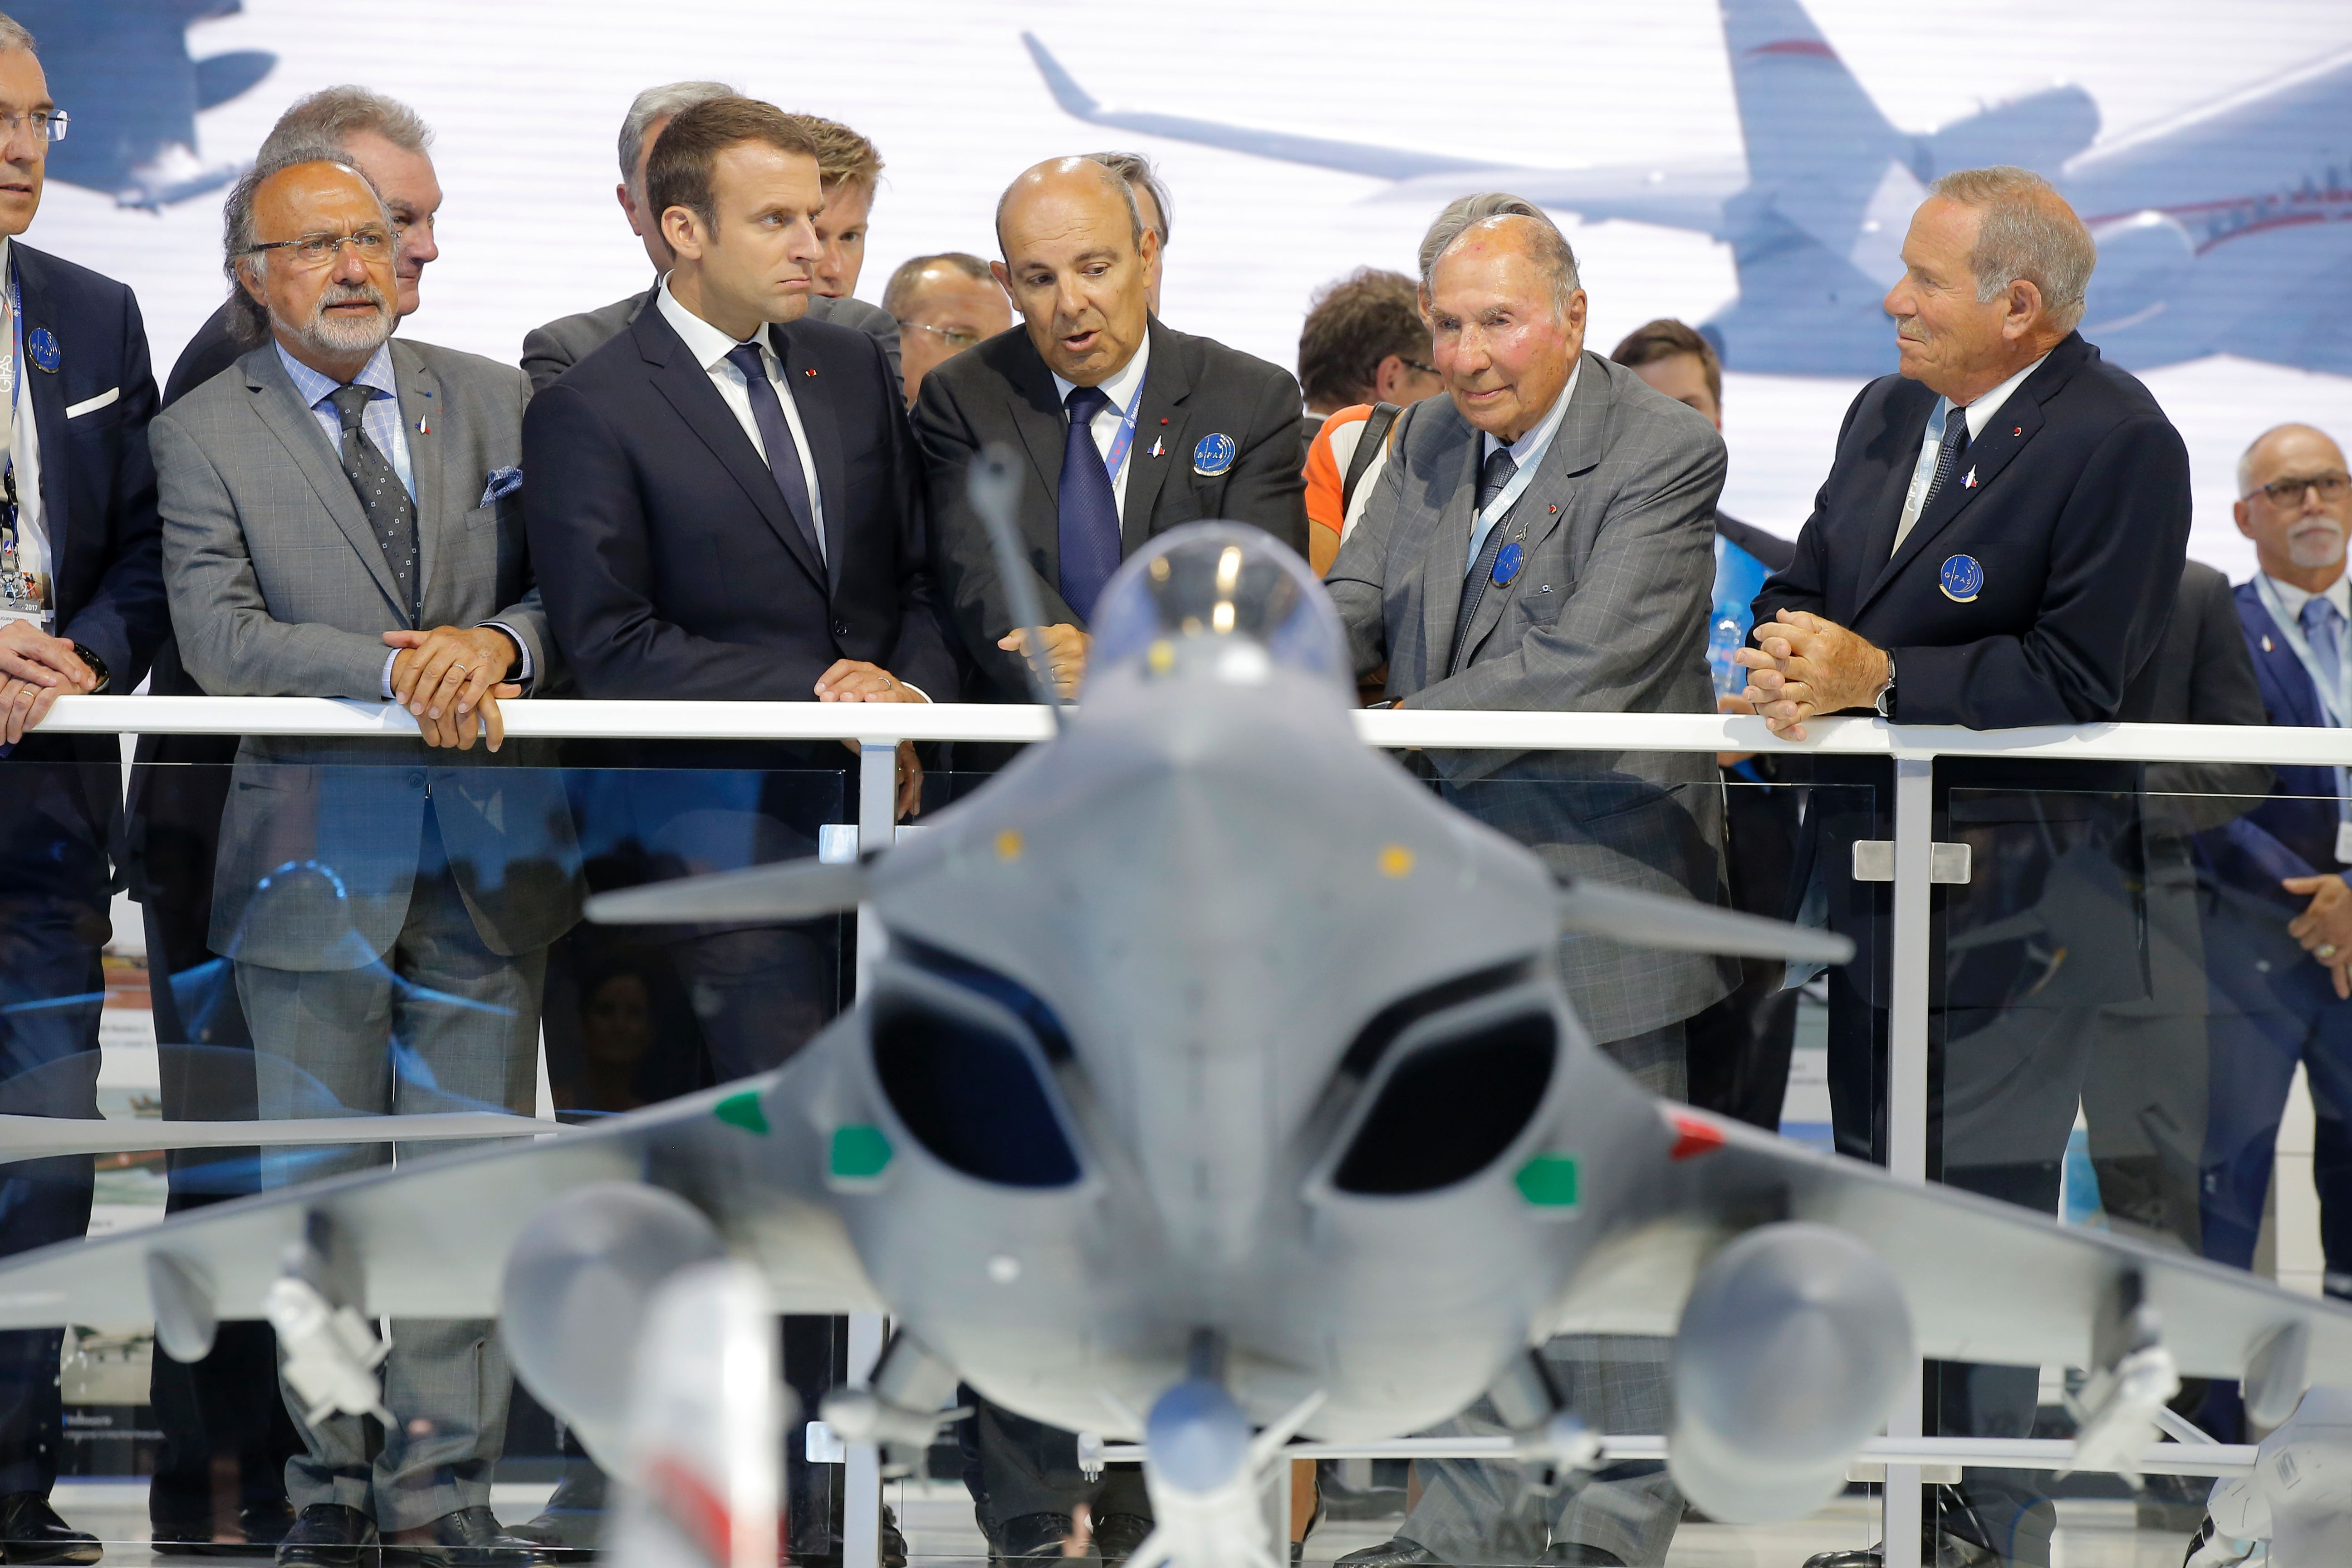 Tech demonstrations key to mitigating project risks, says Dassault Aviation boss